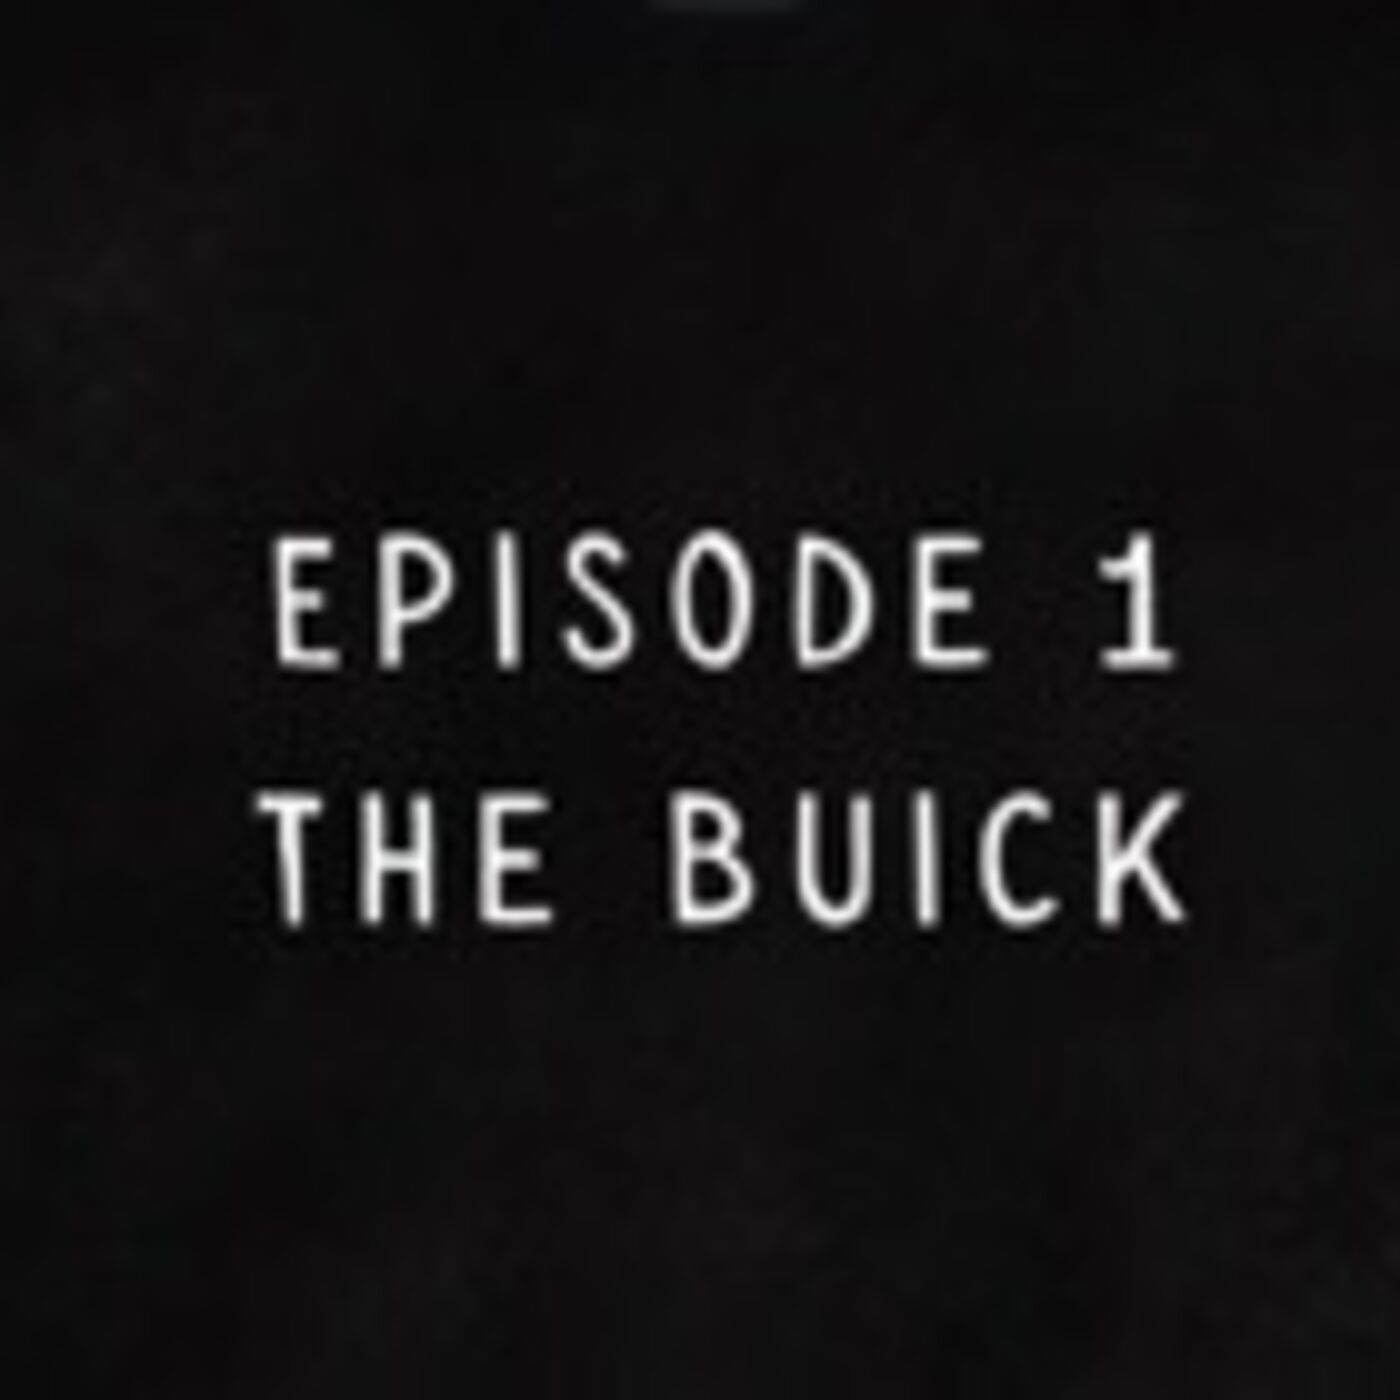 Episode 1: The Buick